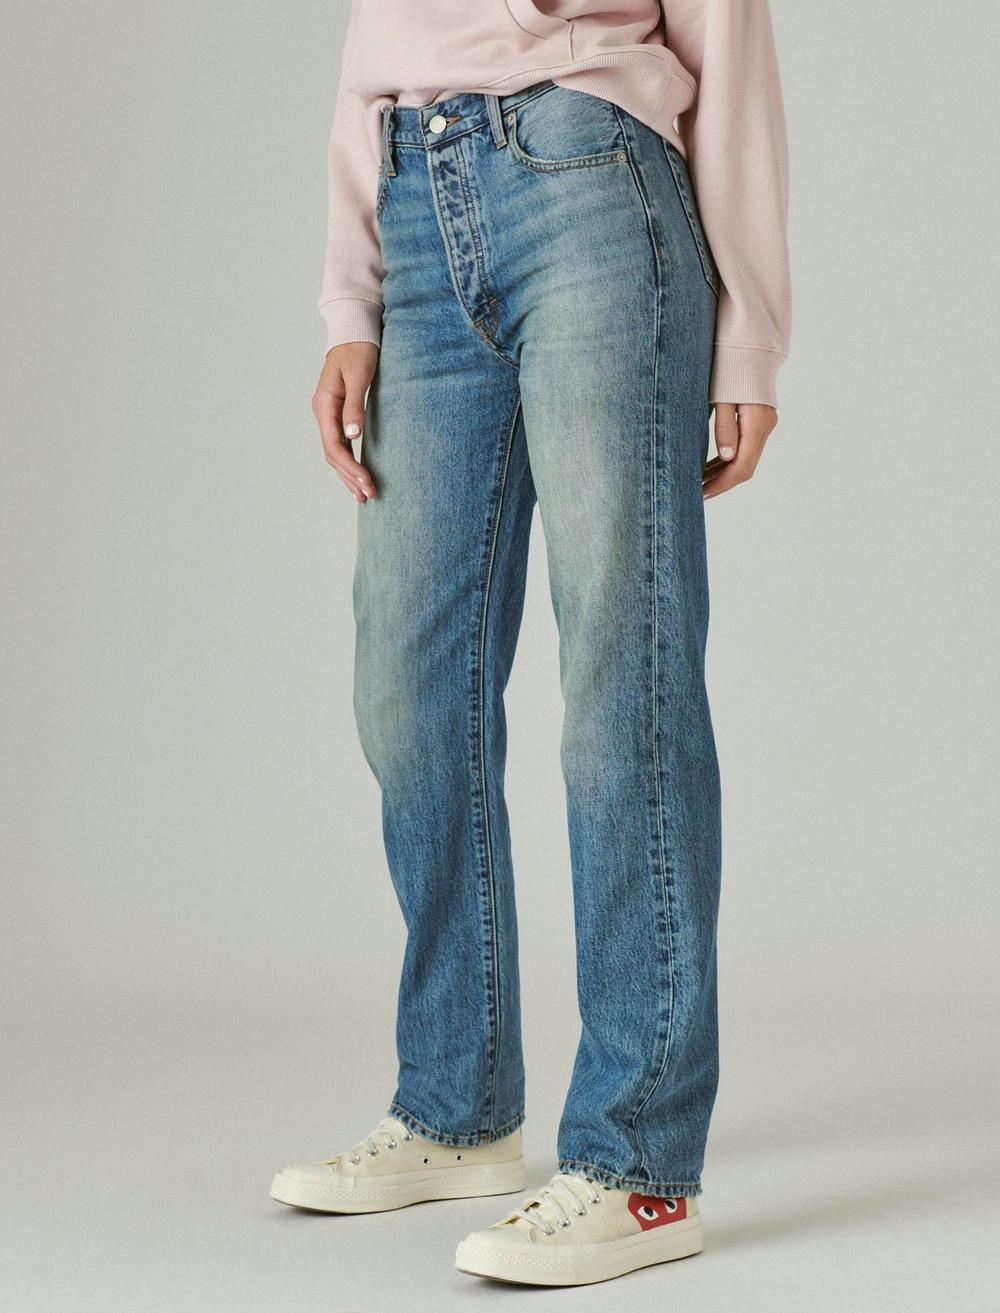 HIGH RISE 90's JEAN, image 5